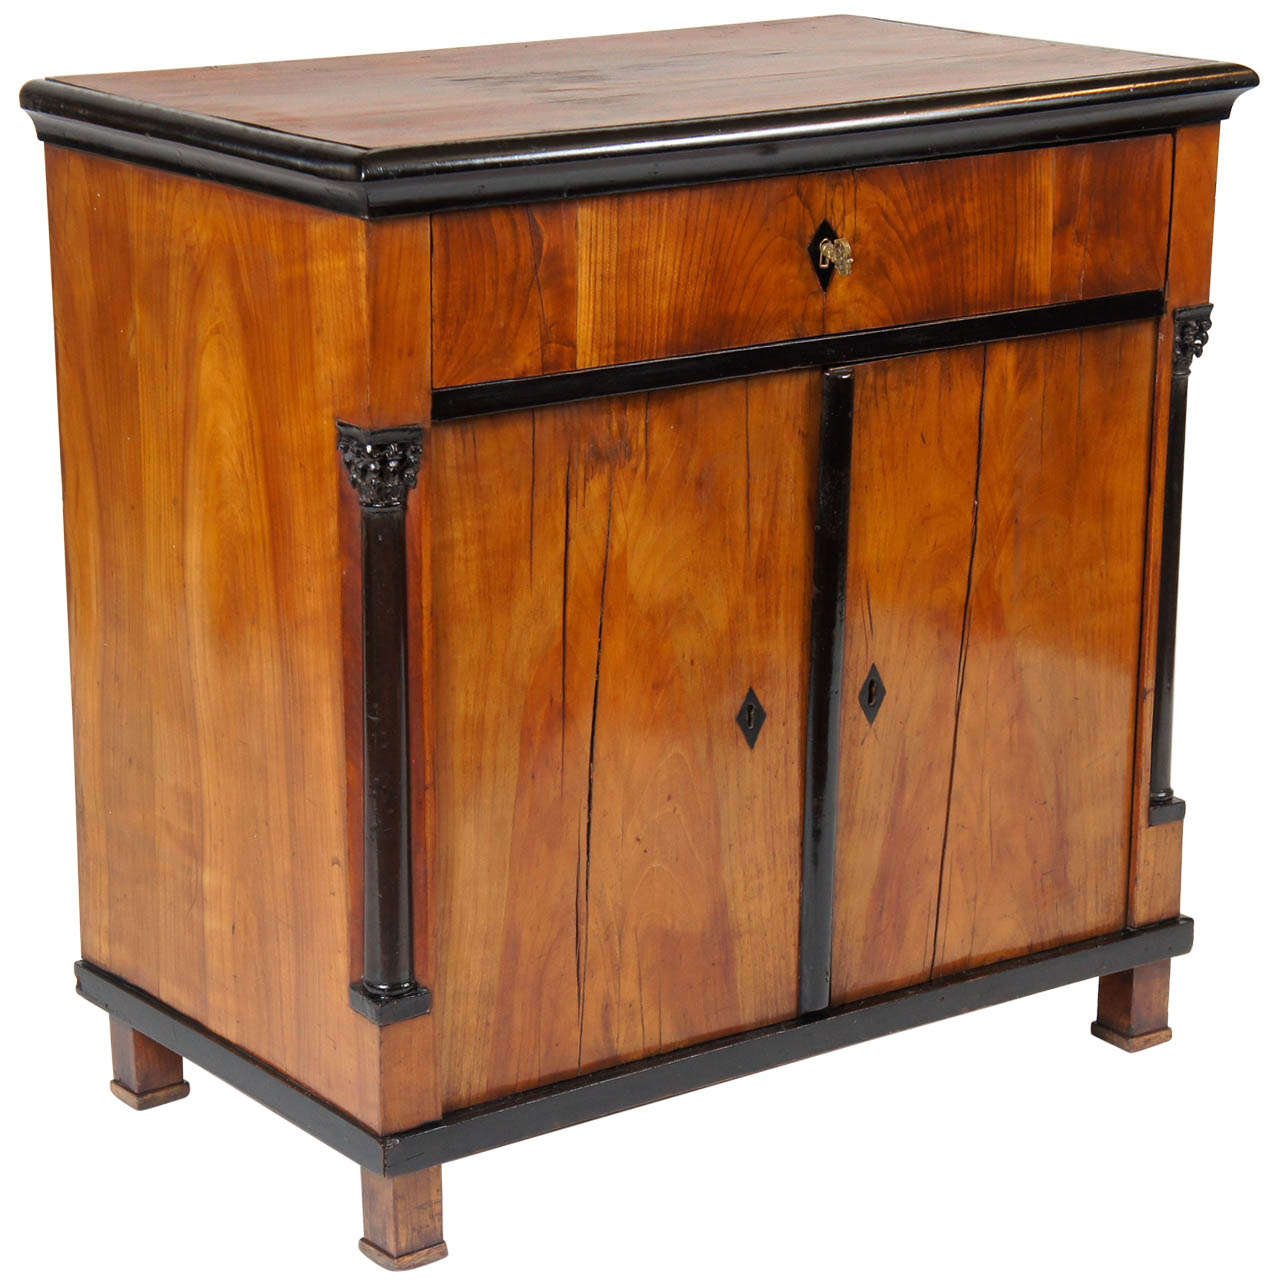 biedermeier petite commode north germany c 1820 at 1stdibs. Black Bedroom Furniture Sets. Home Design Ideas